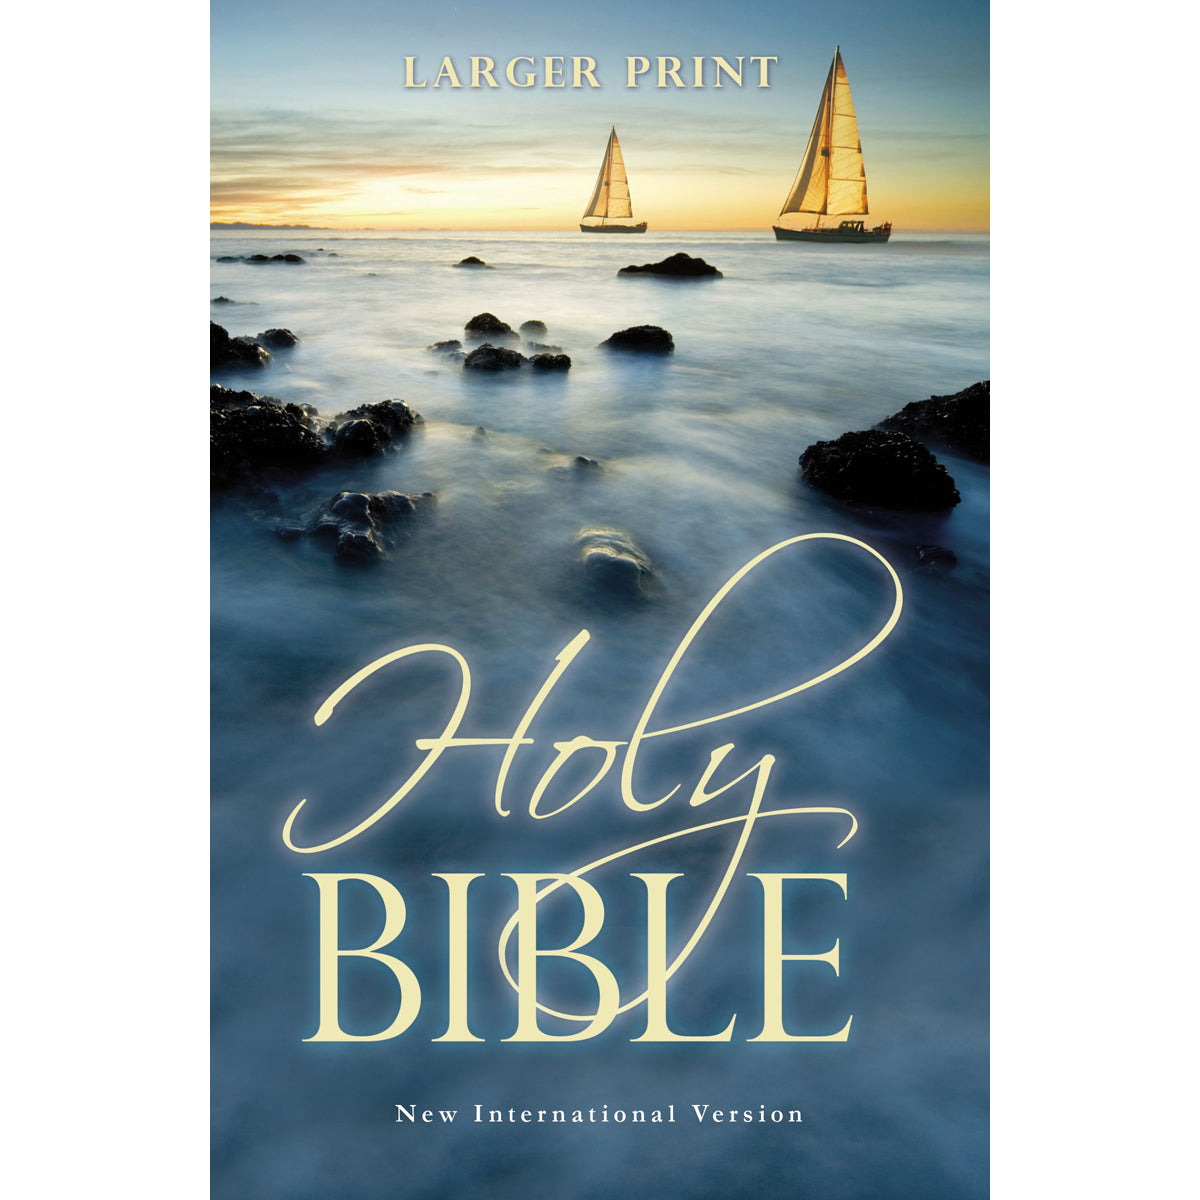 NIV Holy Bible Larger Print Sea (Paperback)